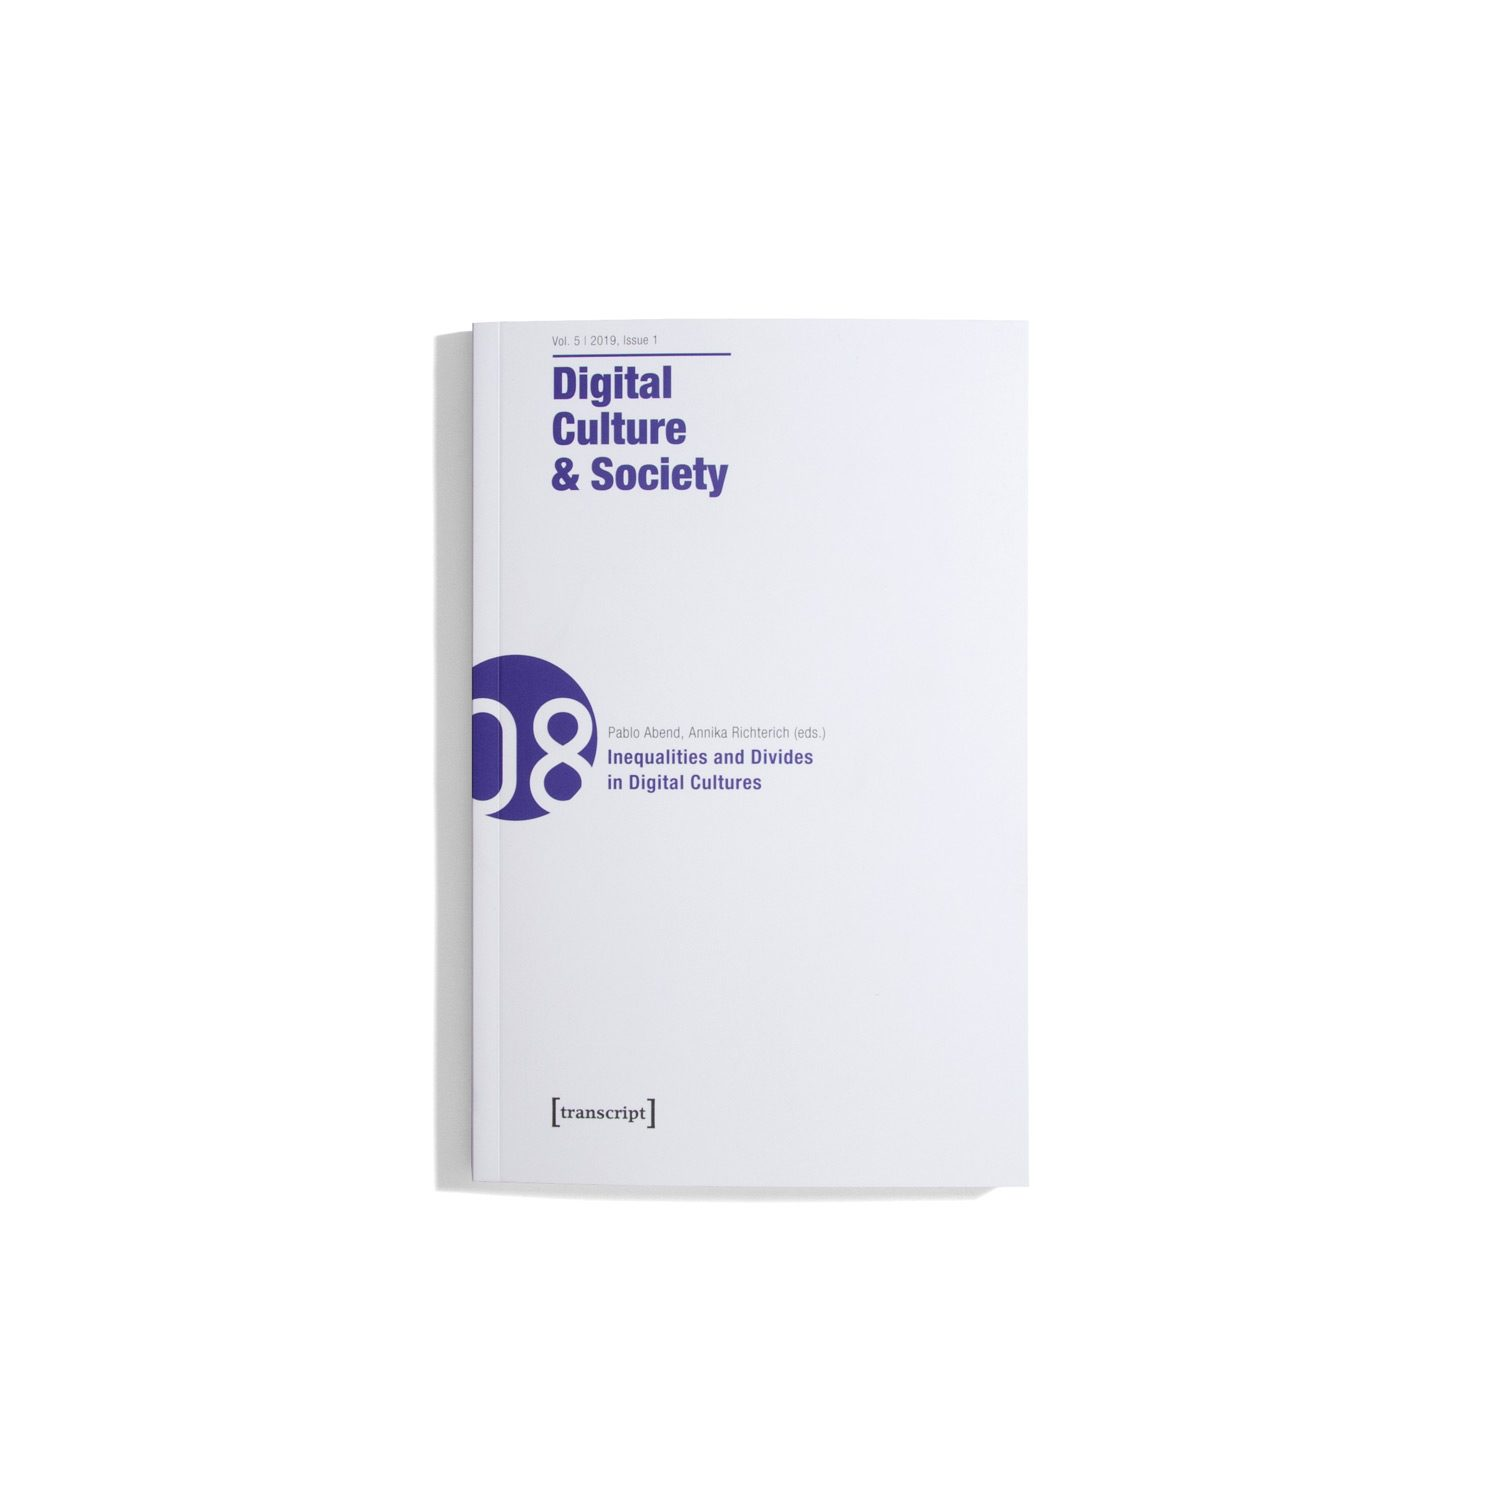 DCS Digital culture & society Vol 5 #1 2019 - Inequalities and Divides in Digital Cultures